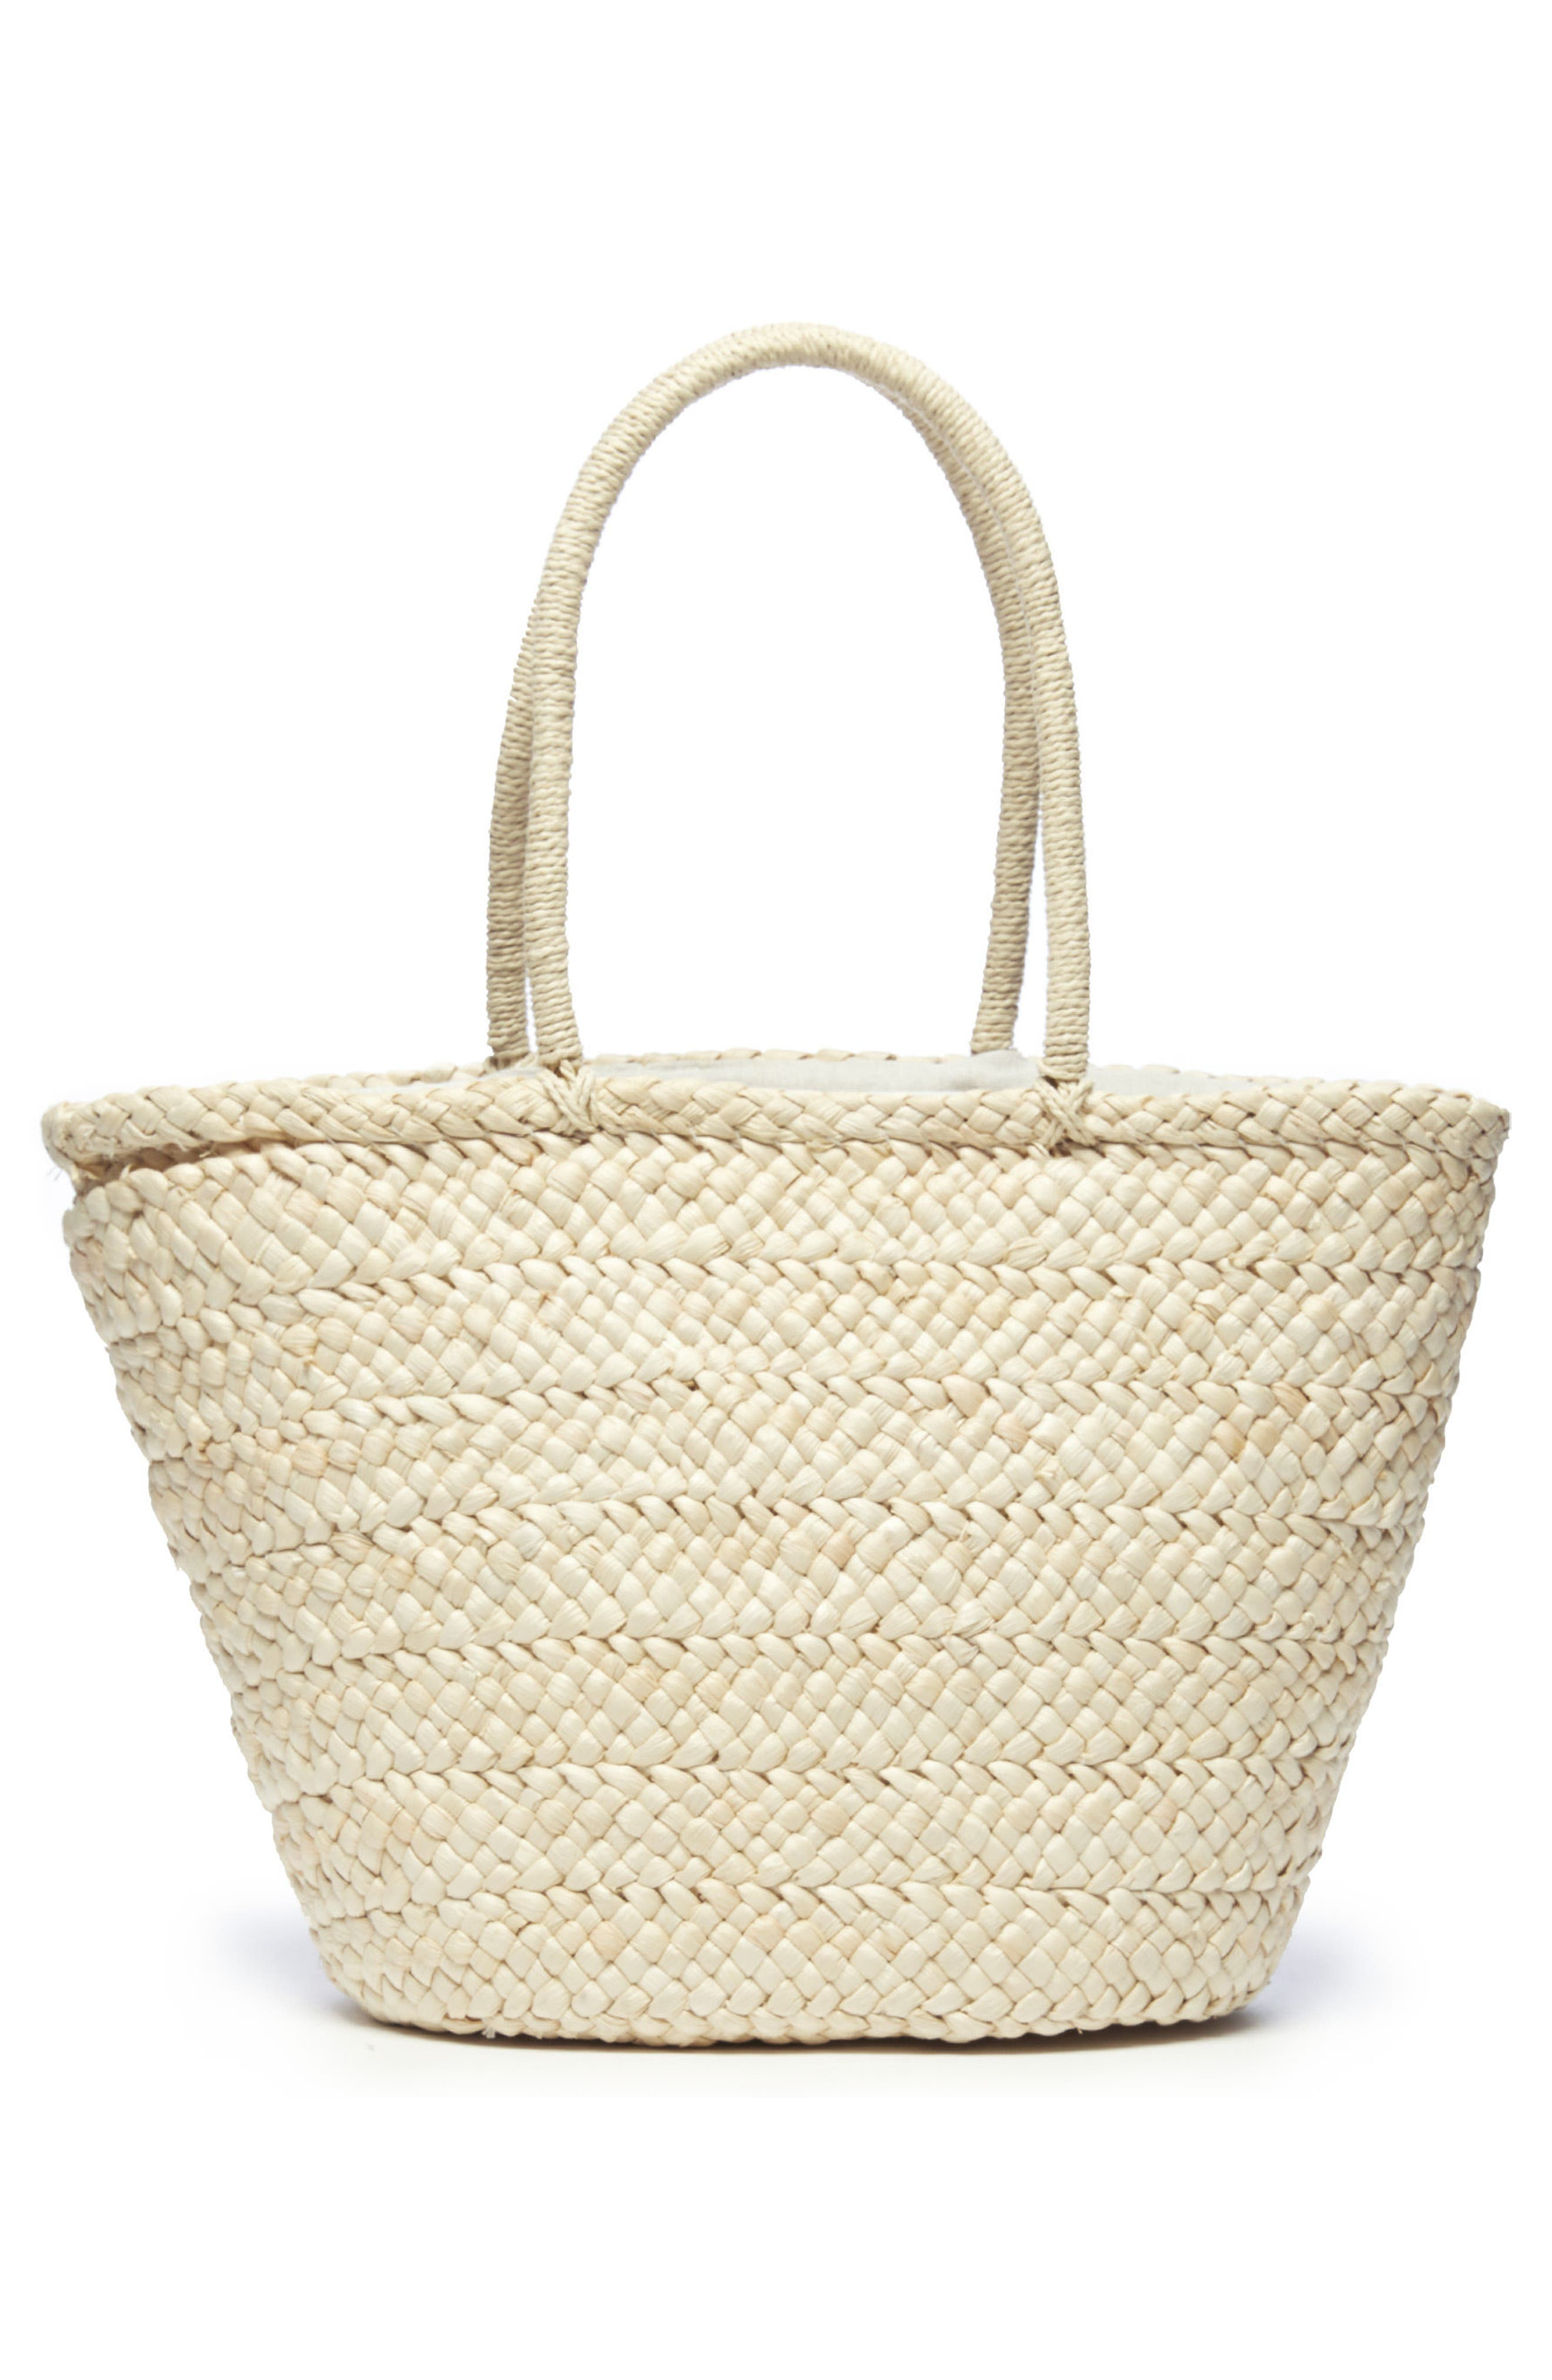 Straw Tote,                             Alternate thumbnail 2, color,                             250